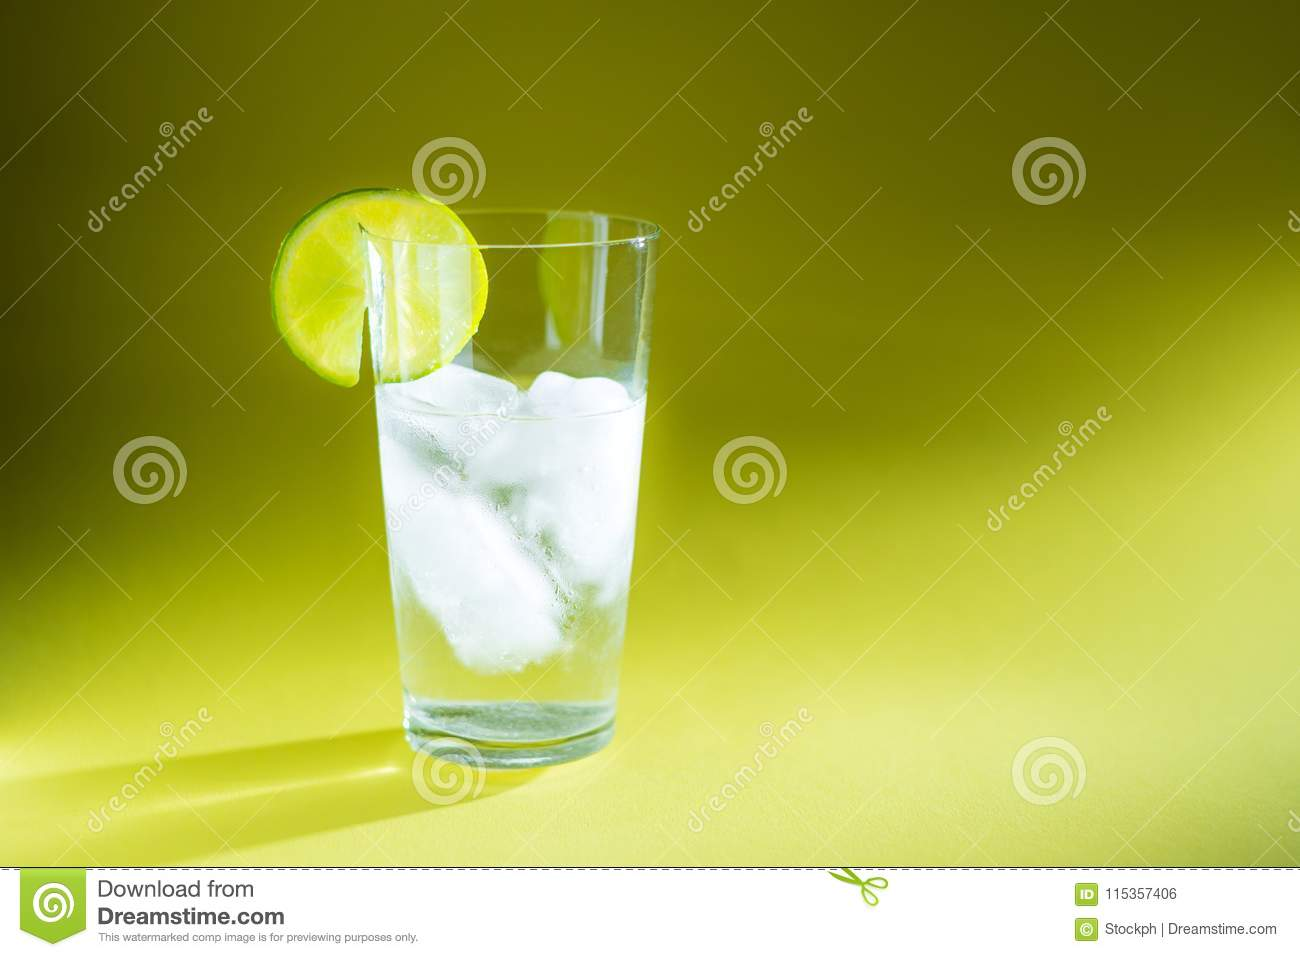 Pure water in a glass of real ice and a slice of fresh lime in the rays of light